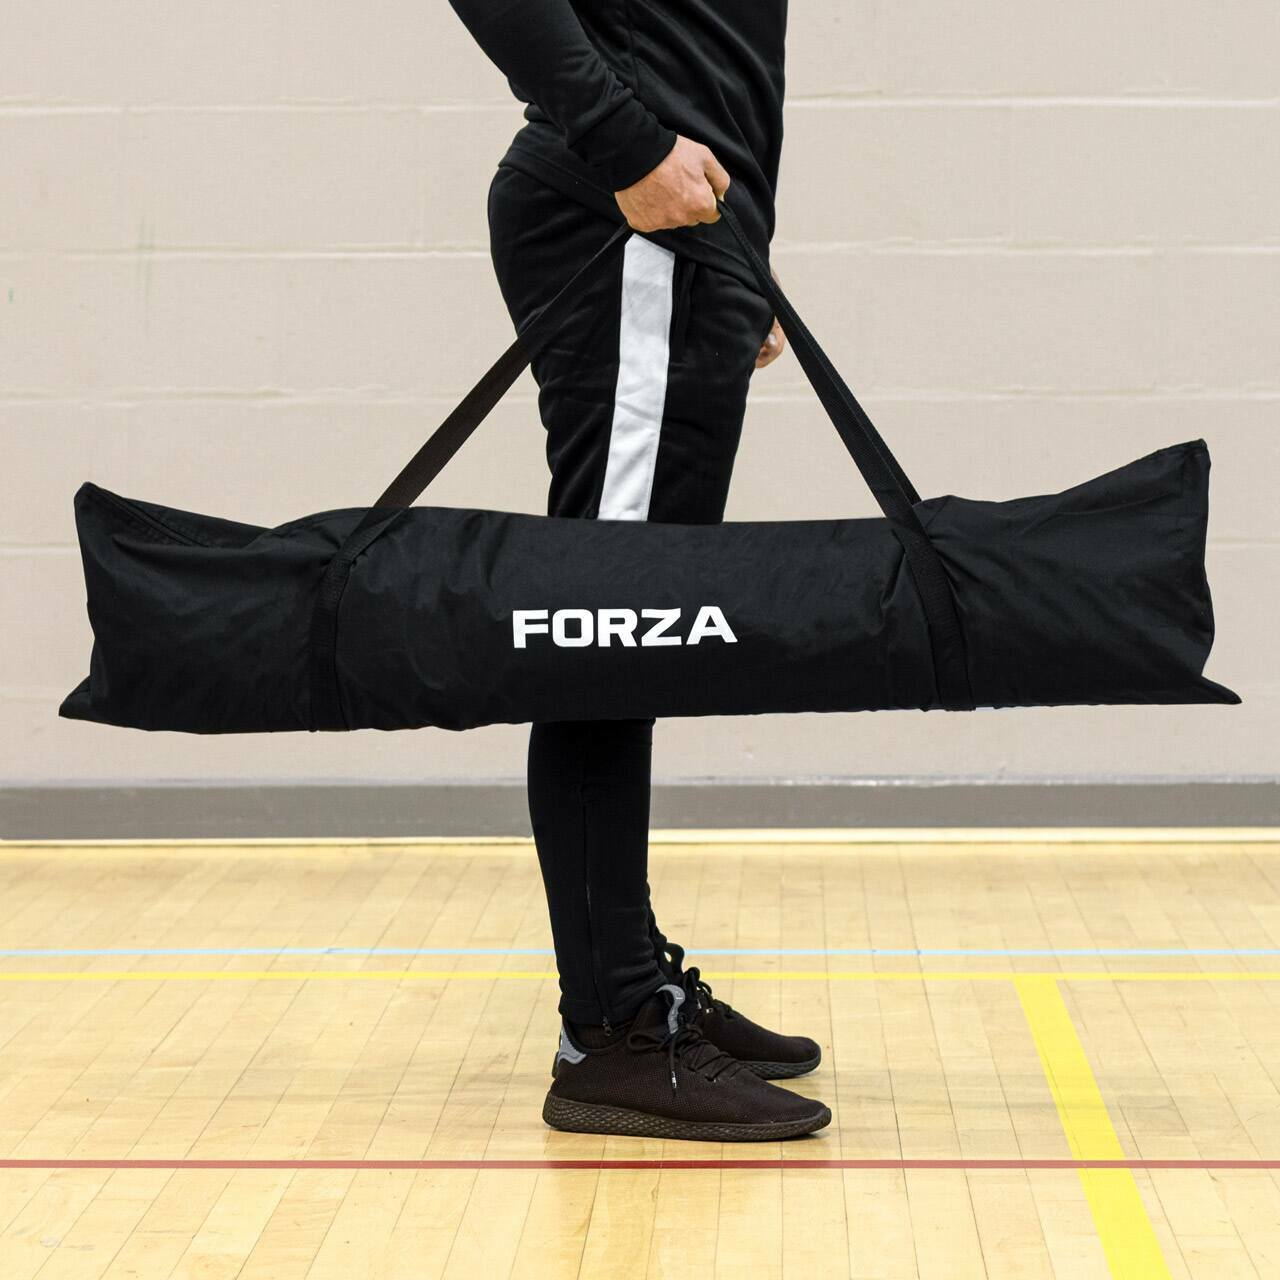 Lightweight & Portable Handball Goals | Carry Bag Included